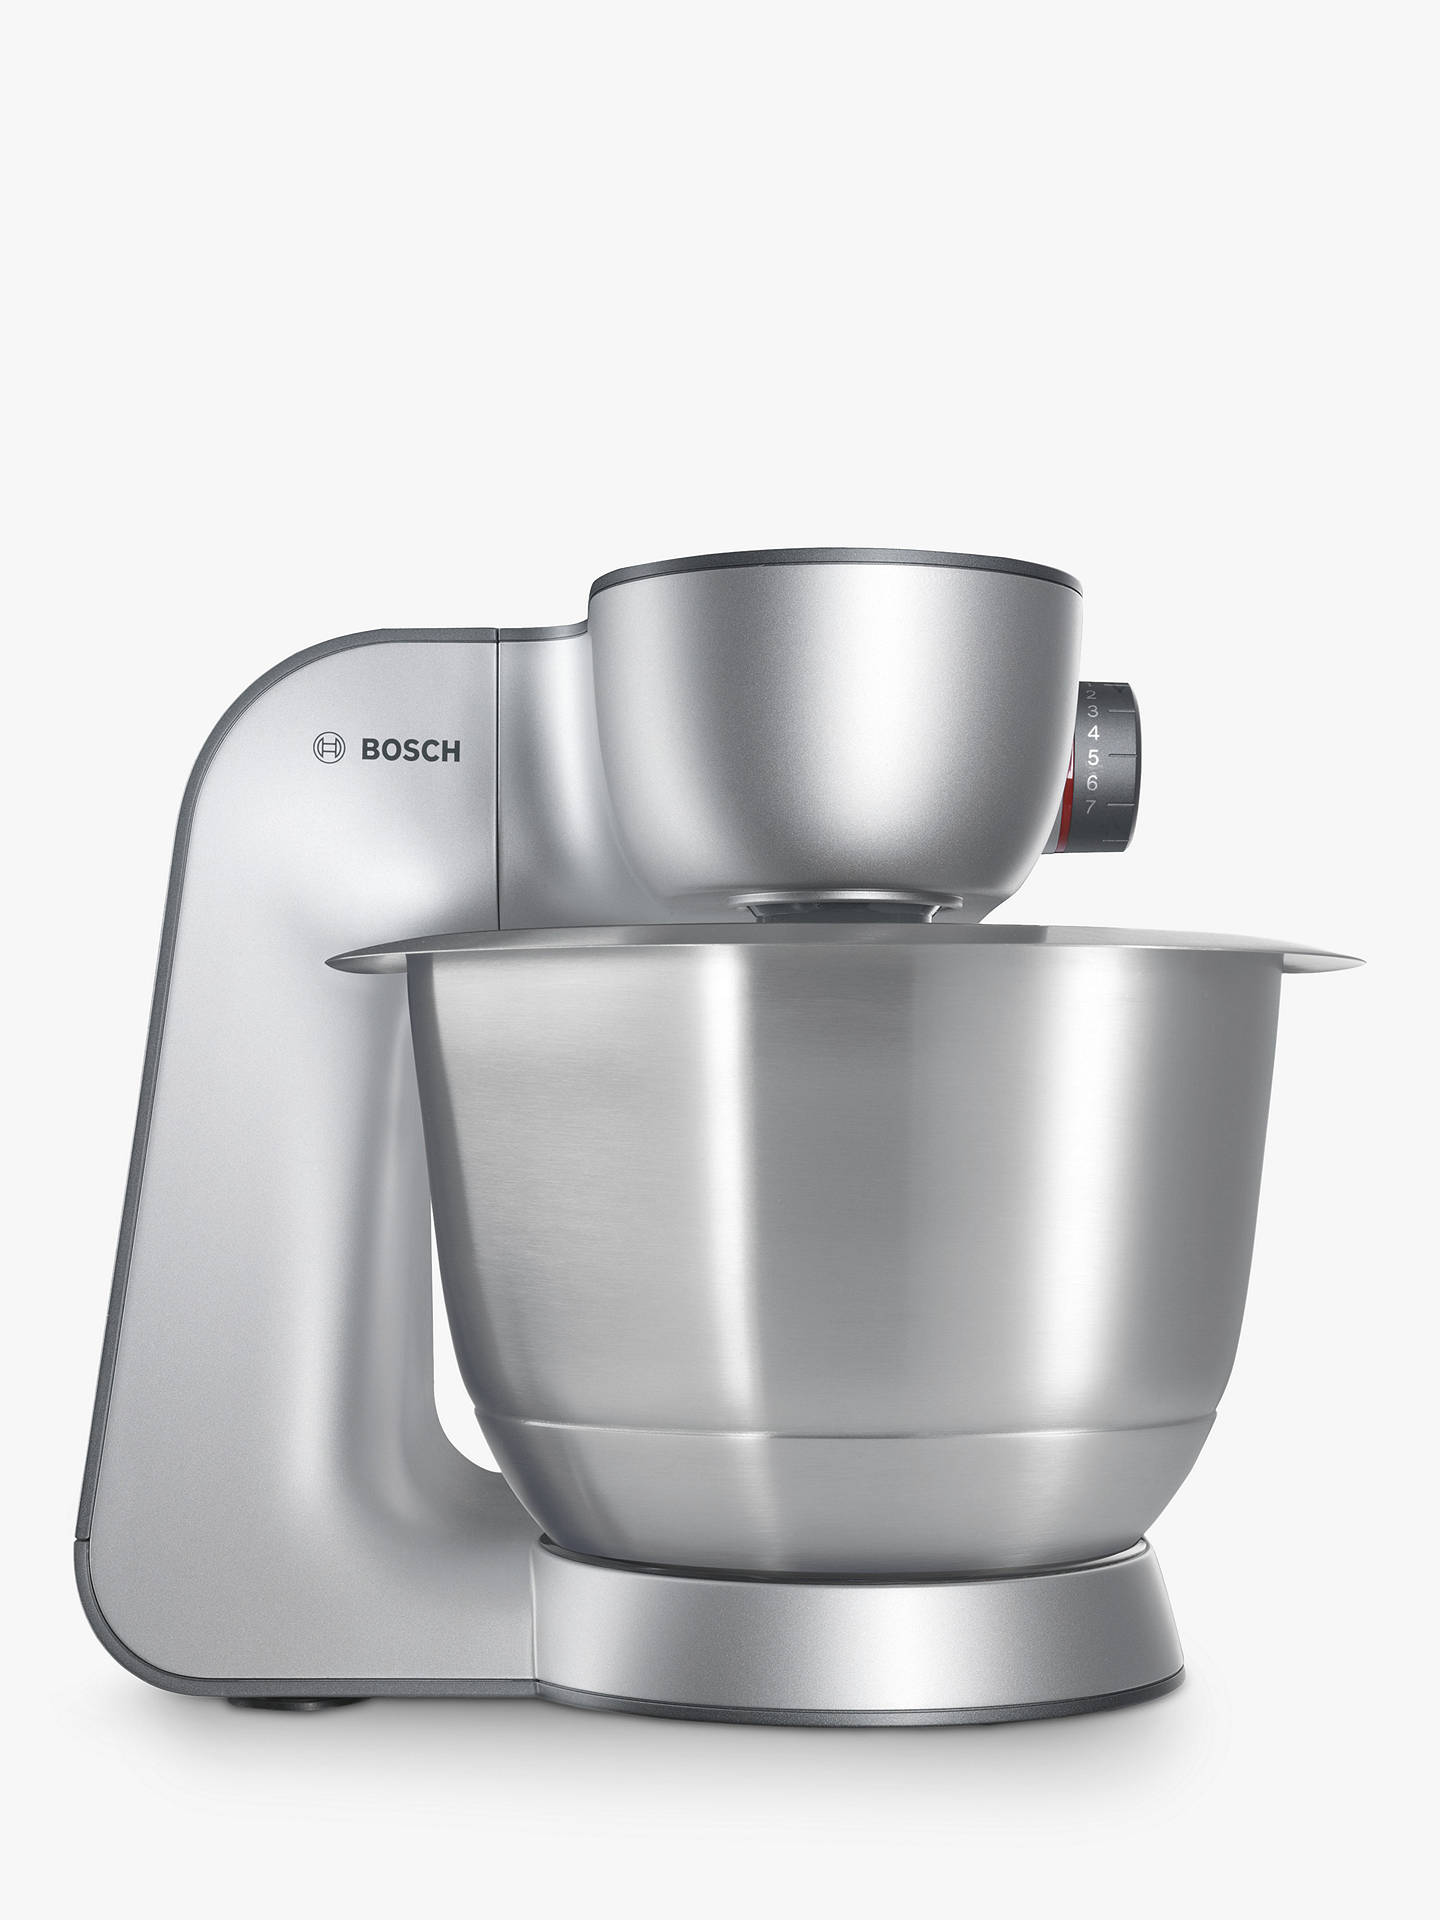 Bosch Mum59340gb Kitchen Machine Food Mixer Silver